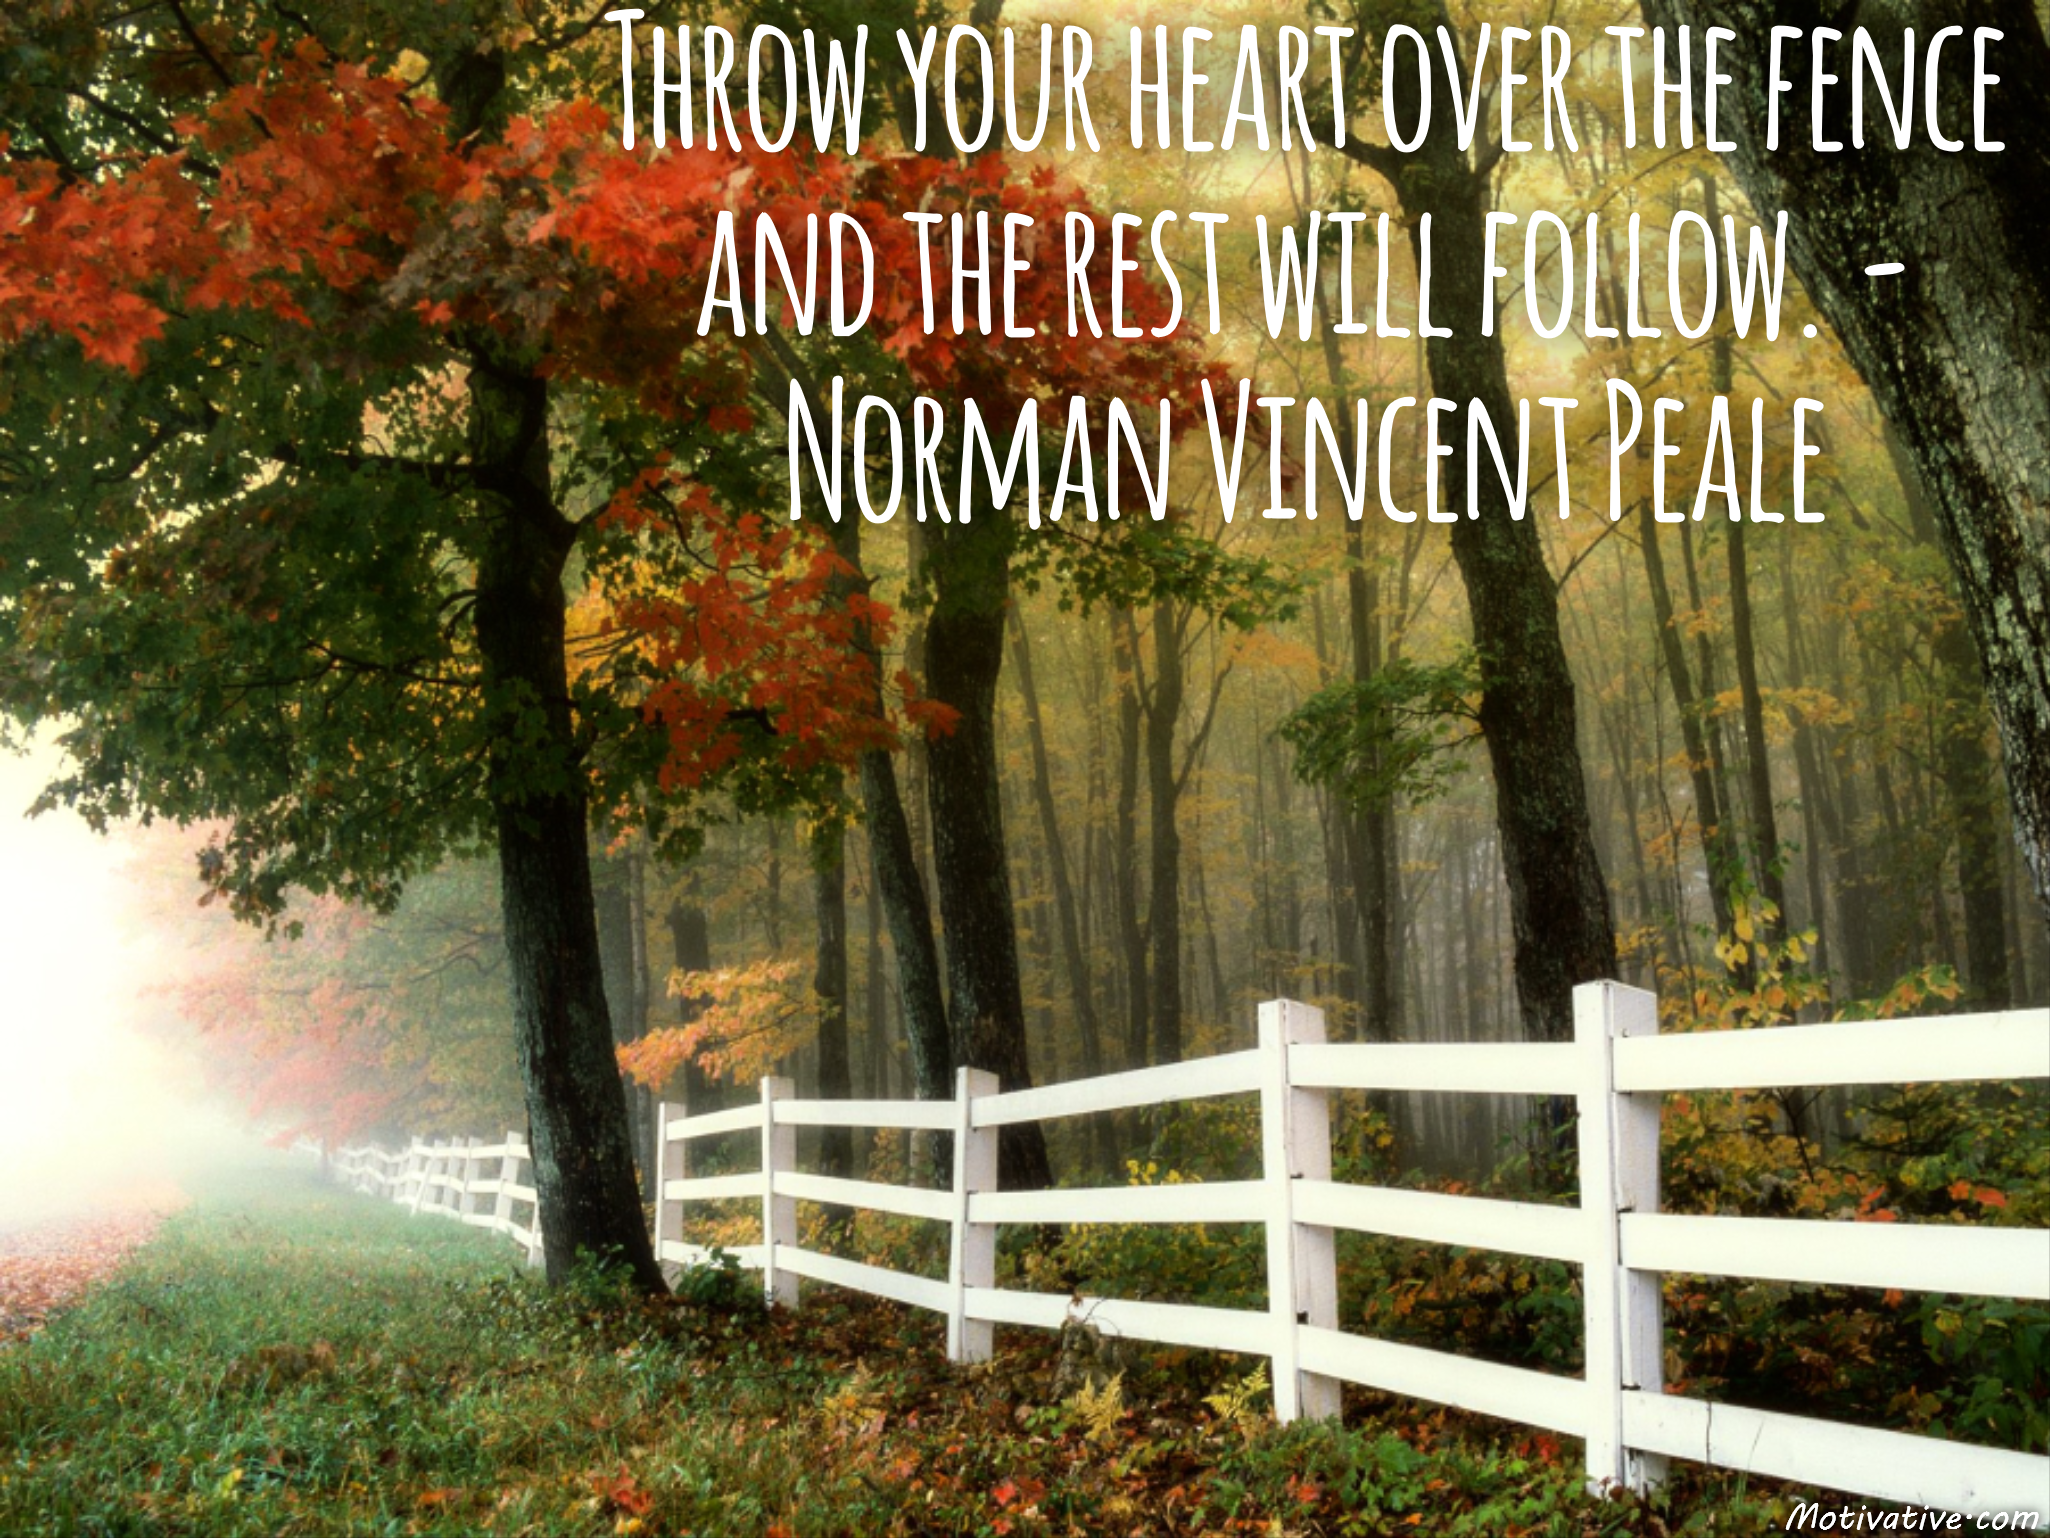 Throw your heart over the fence and the rest will follow. – Norman Vincent Peale